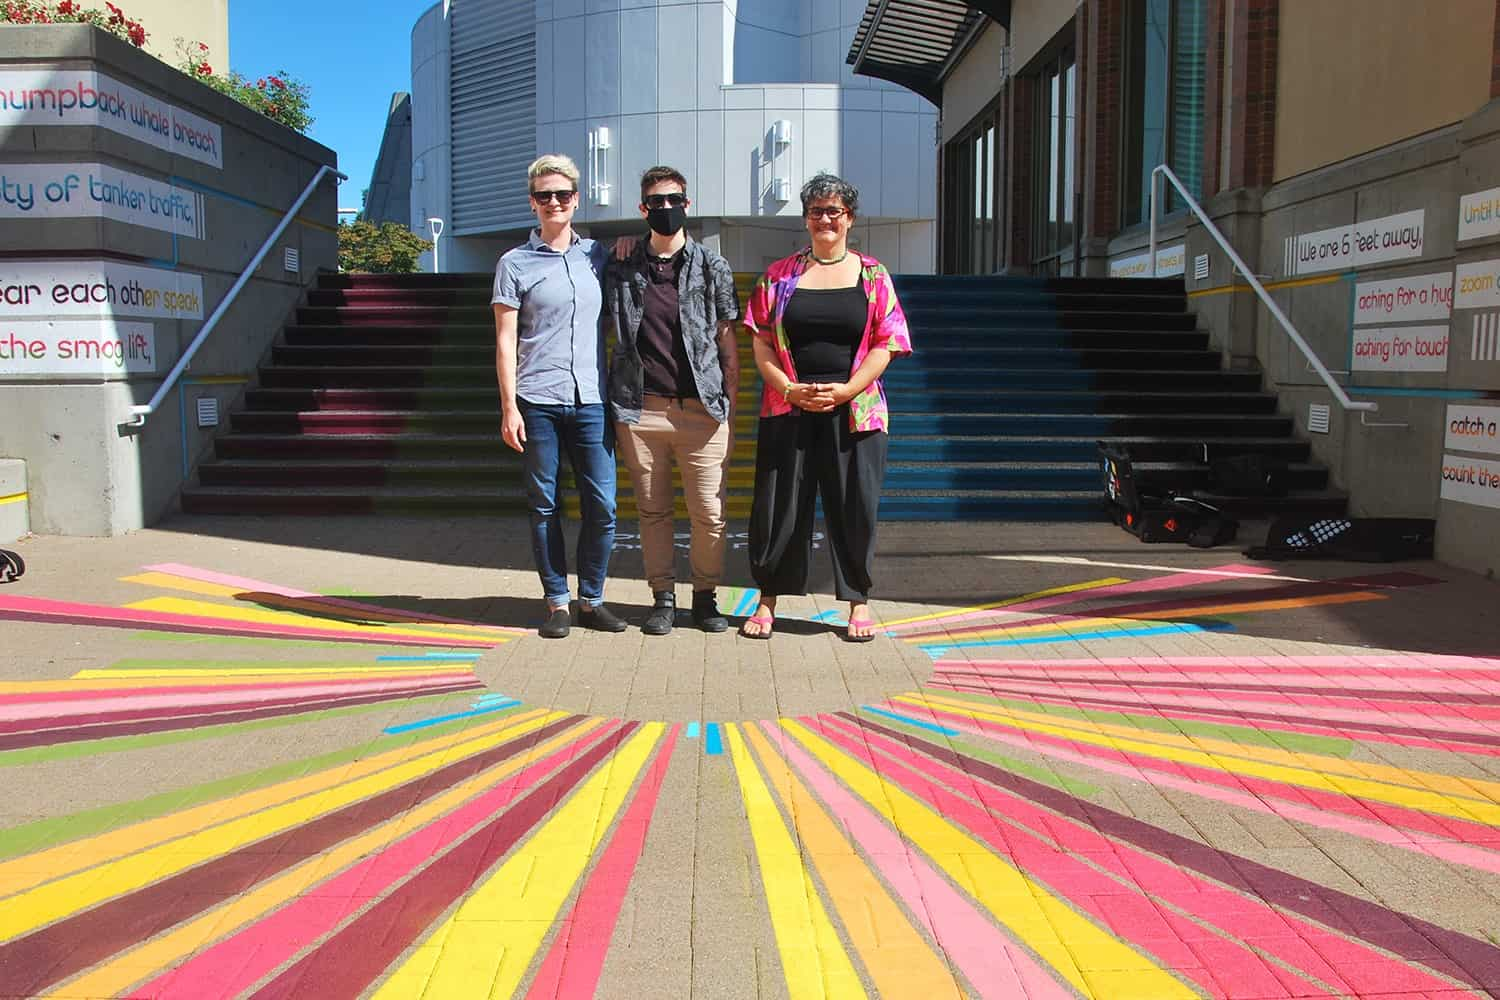 Lauren Semple, Lys Glassford and Tina Biello collaborate on a Covid-19 placemaking artwork